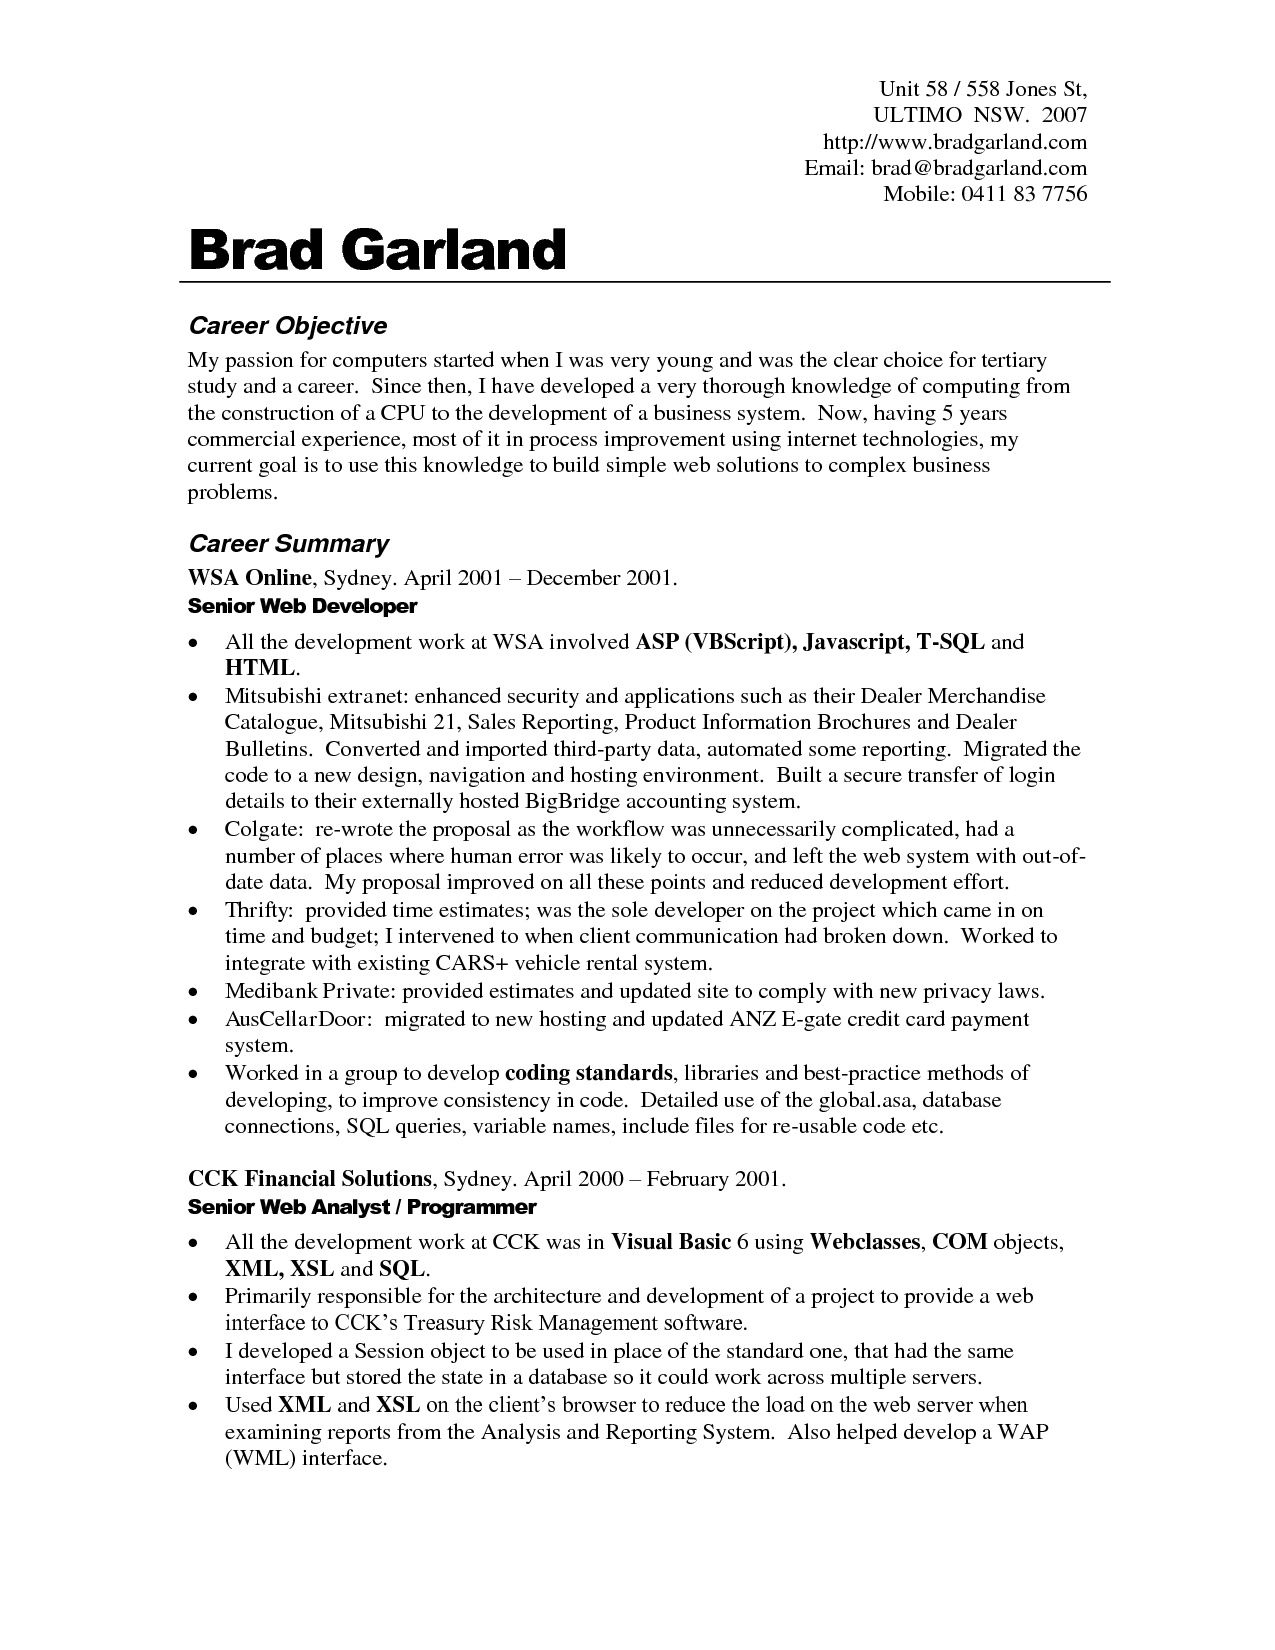 career objective resume examples for example your training goals and objectives rufoot resumes - What Is An Objective On A Resume